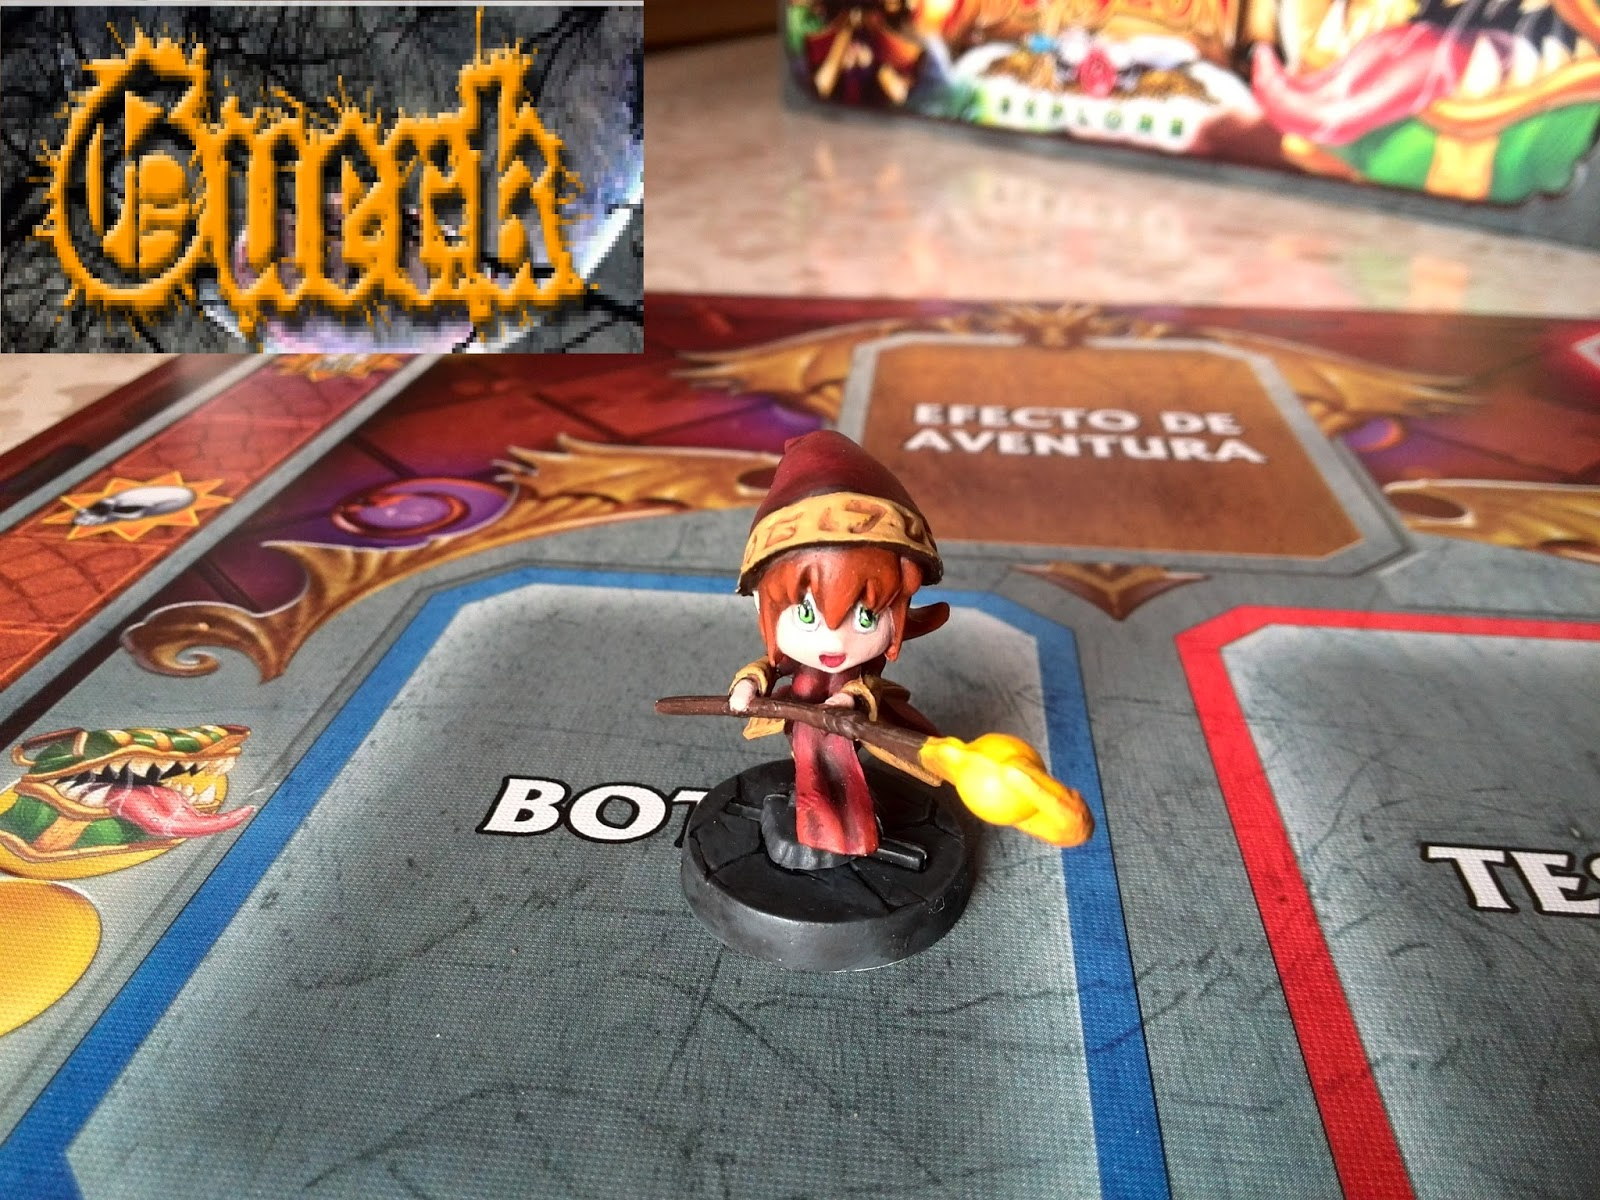 Maga de Fuego / Mage of fire de Super Dungeon Explore (pintado / painted)